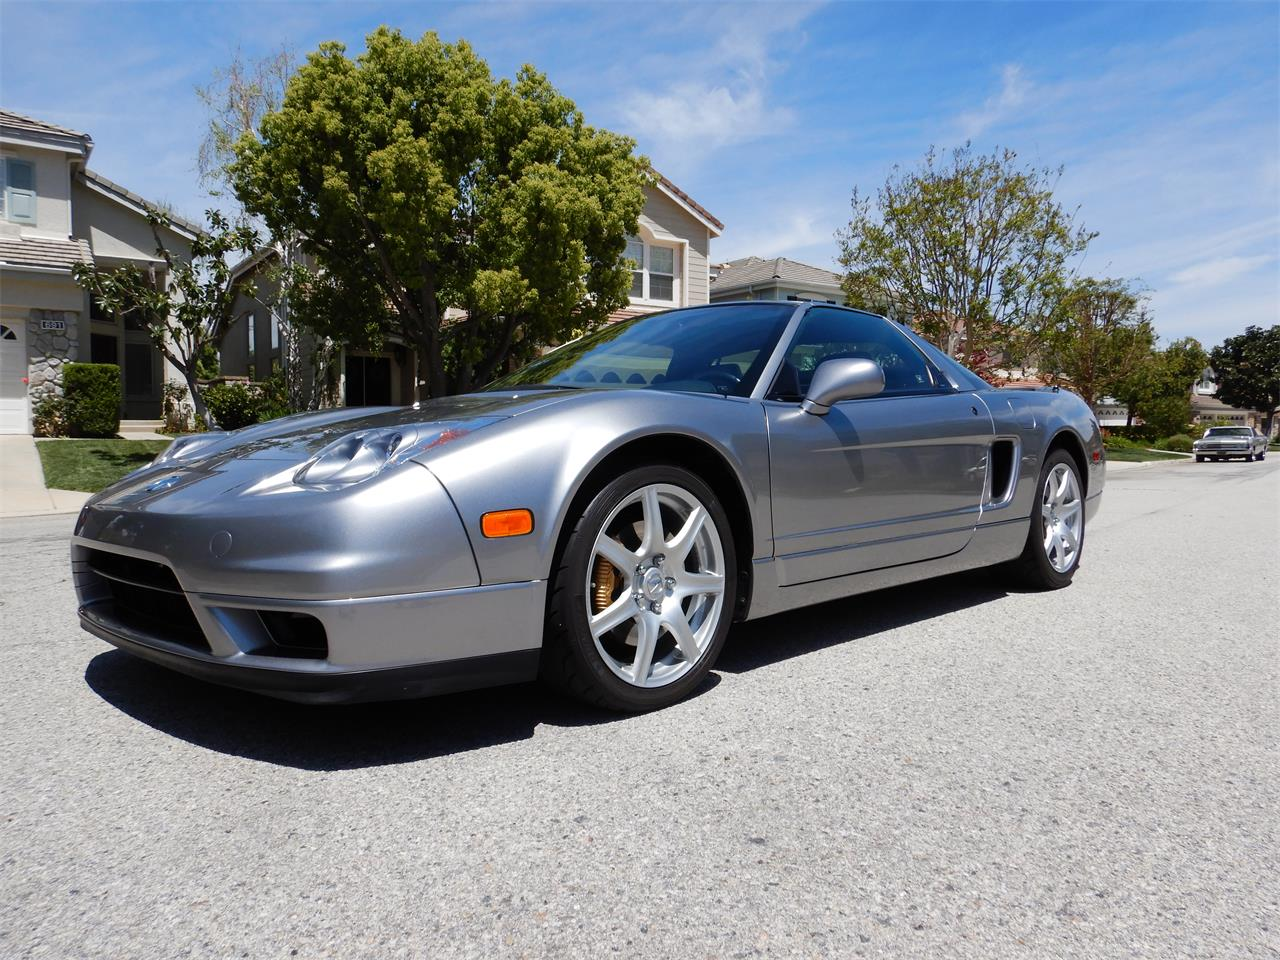 2005 acura nsx-t for sale   classiccars   cc-1090288